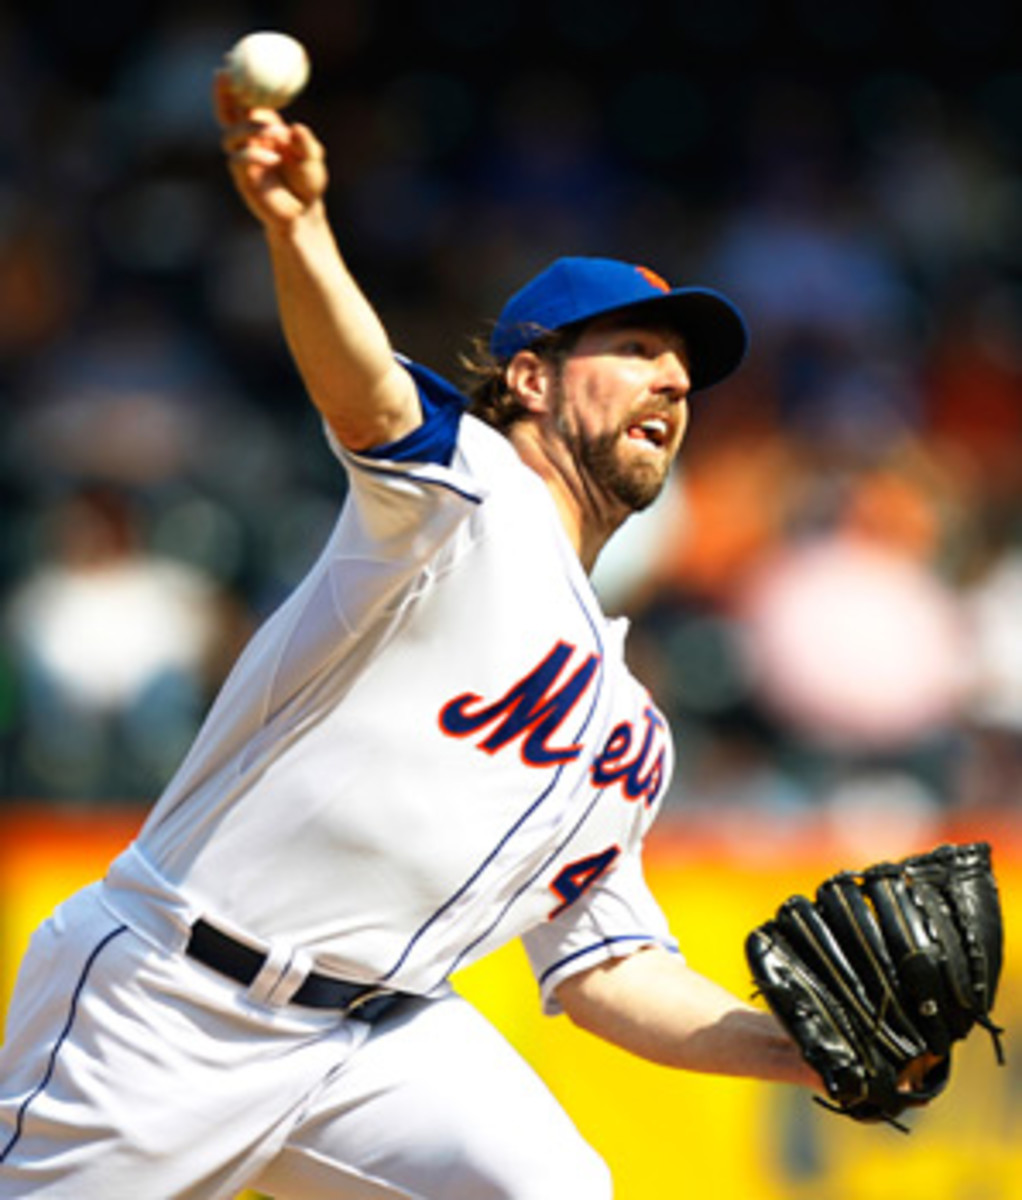 R.A. Dickey's trade to Toronto is contingent on him agreeing to a contract extension.